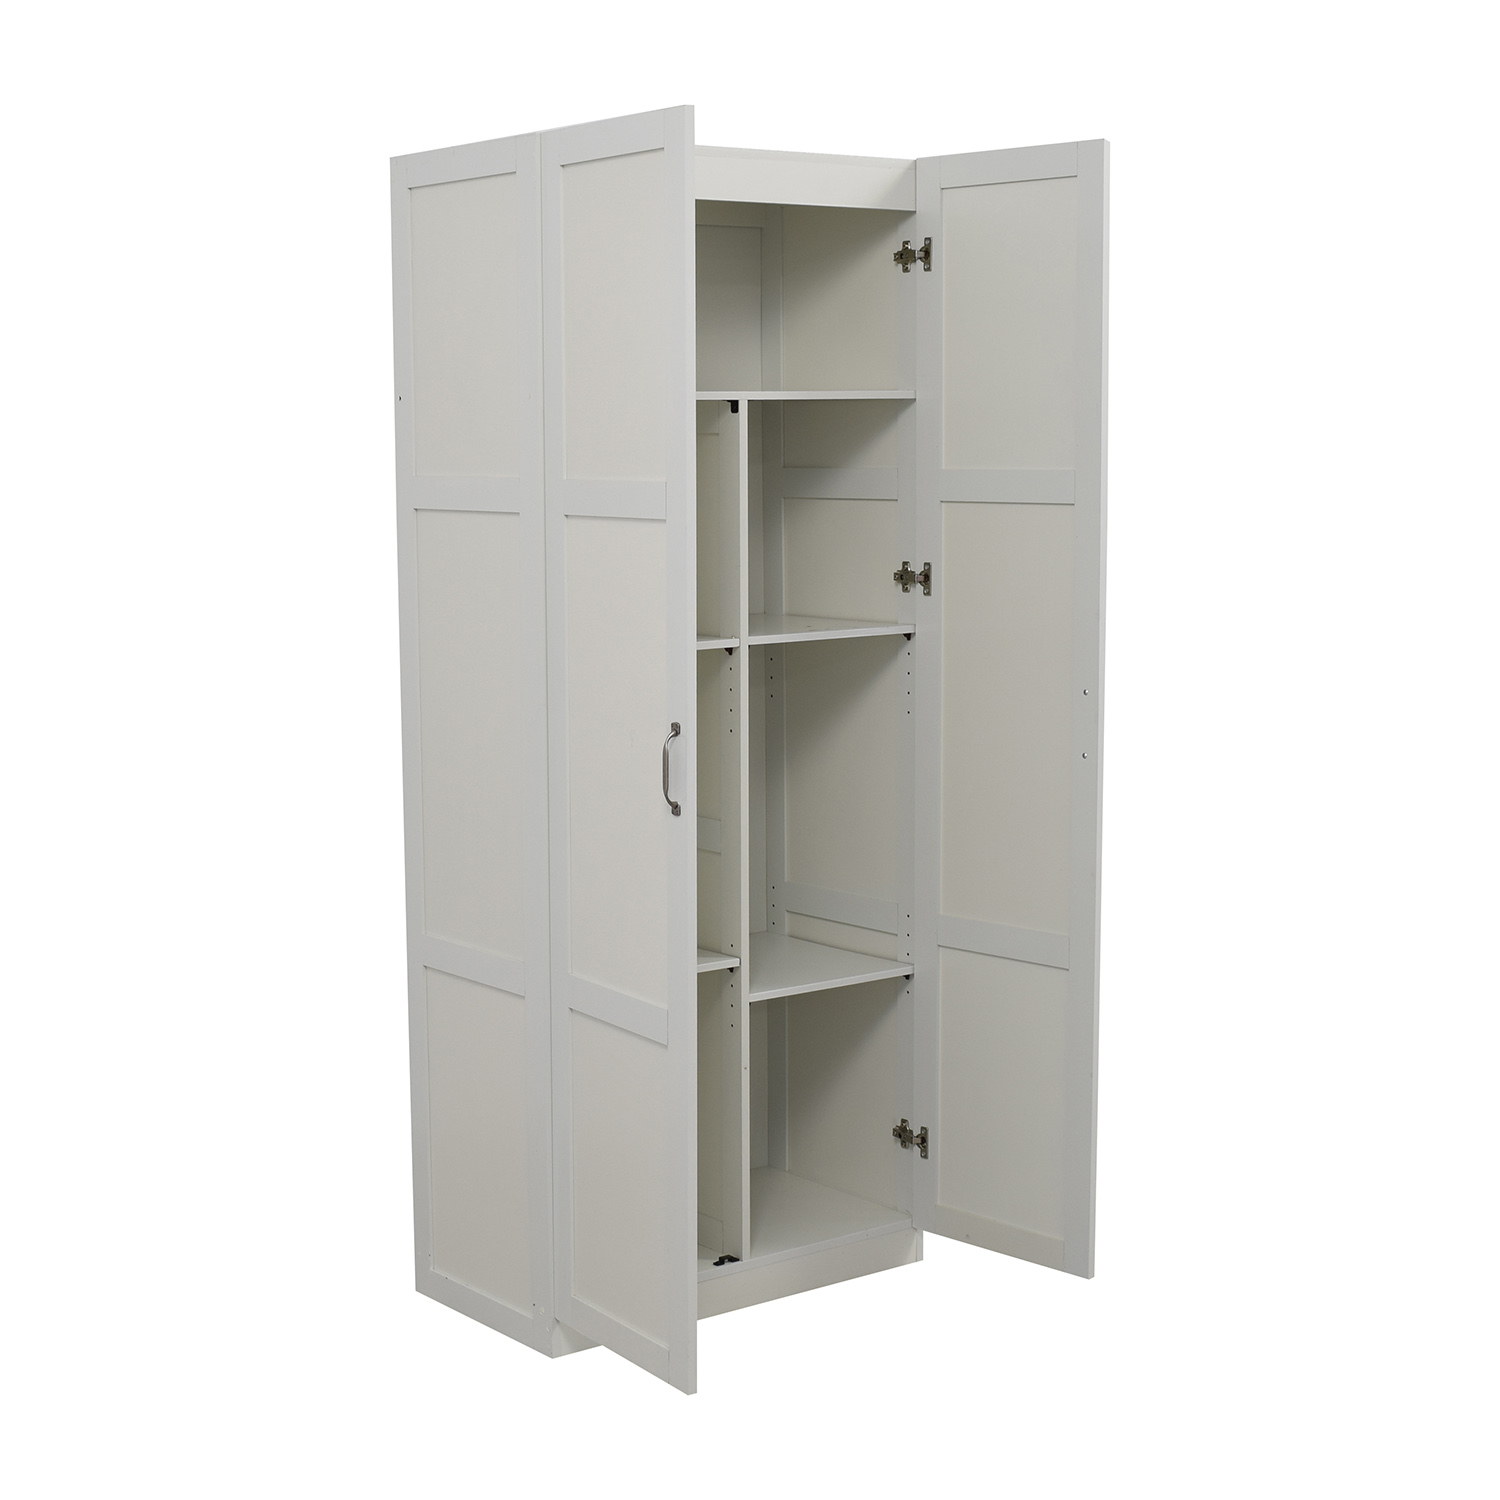 used kitchen cabinets for free open sink 35 off white pantry storage